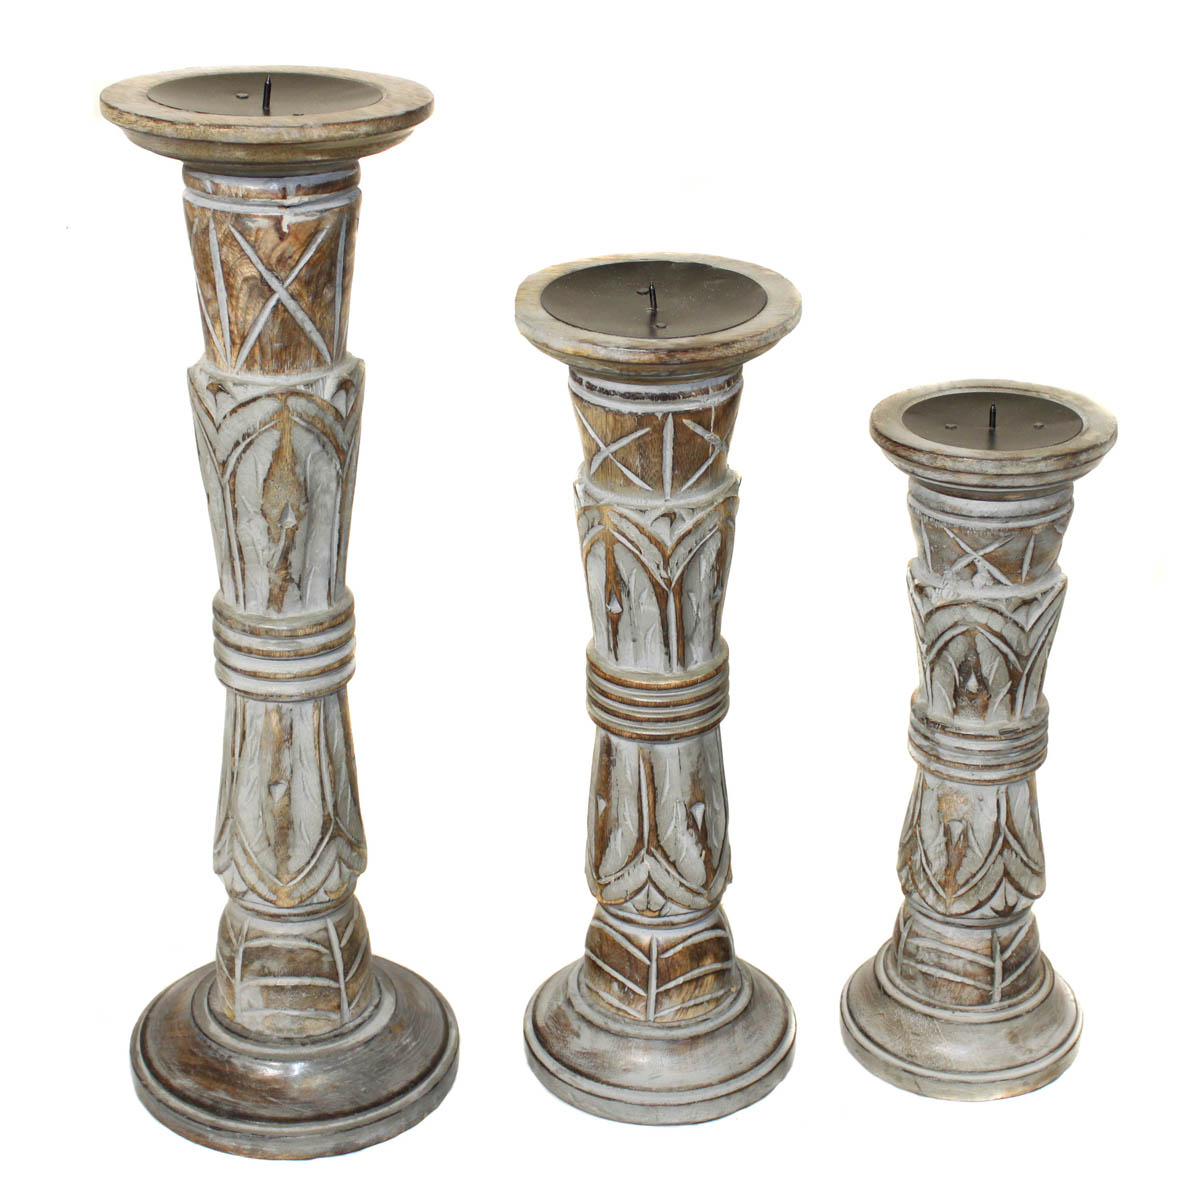 EC World Imports 3 Piece Pompeii Ash Distressed Wood Pillar Candle Holders Set